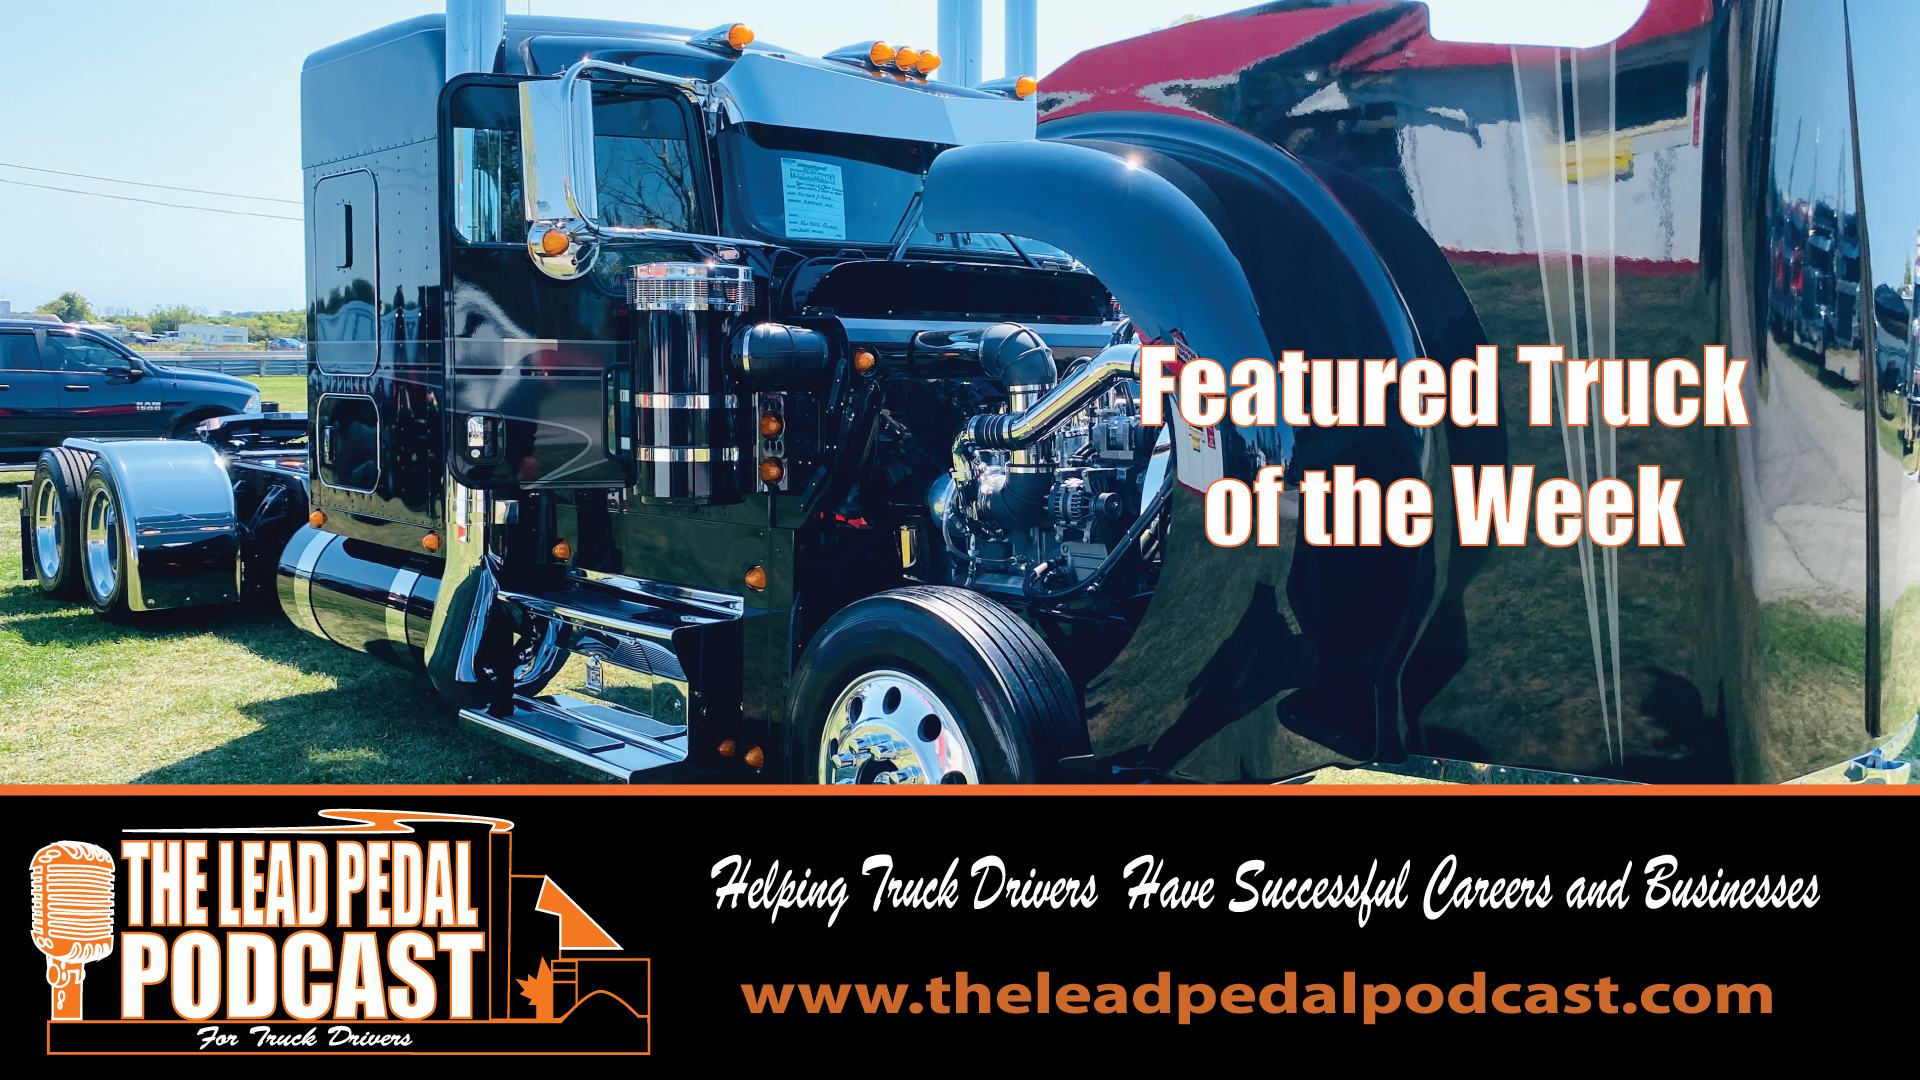 Featured Truck of the Week